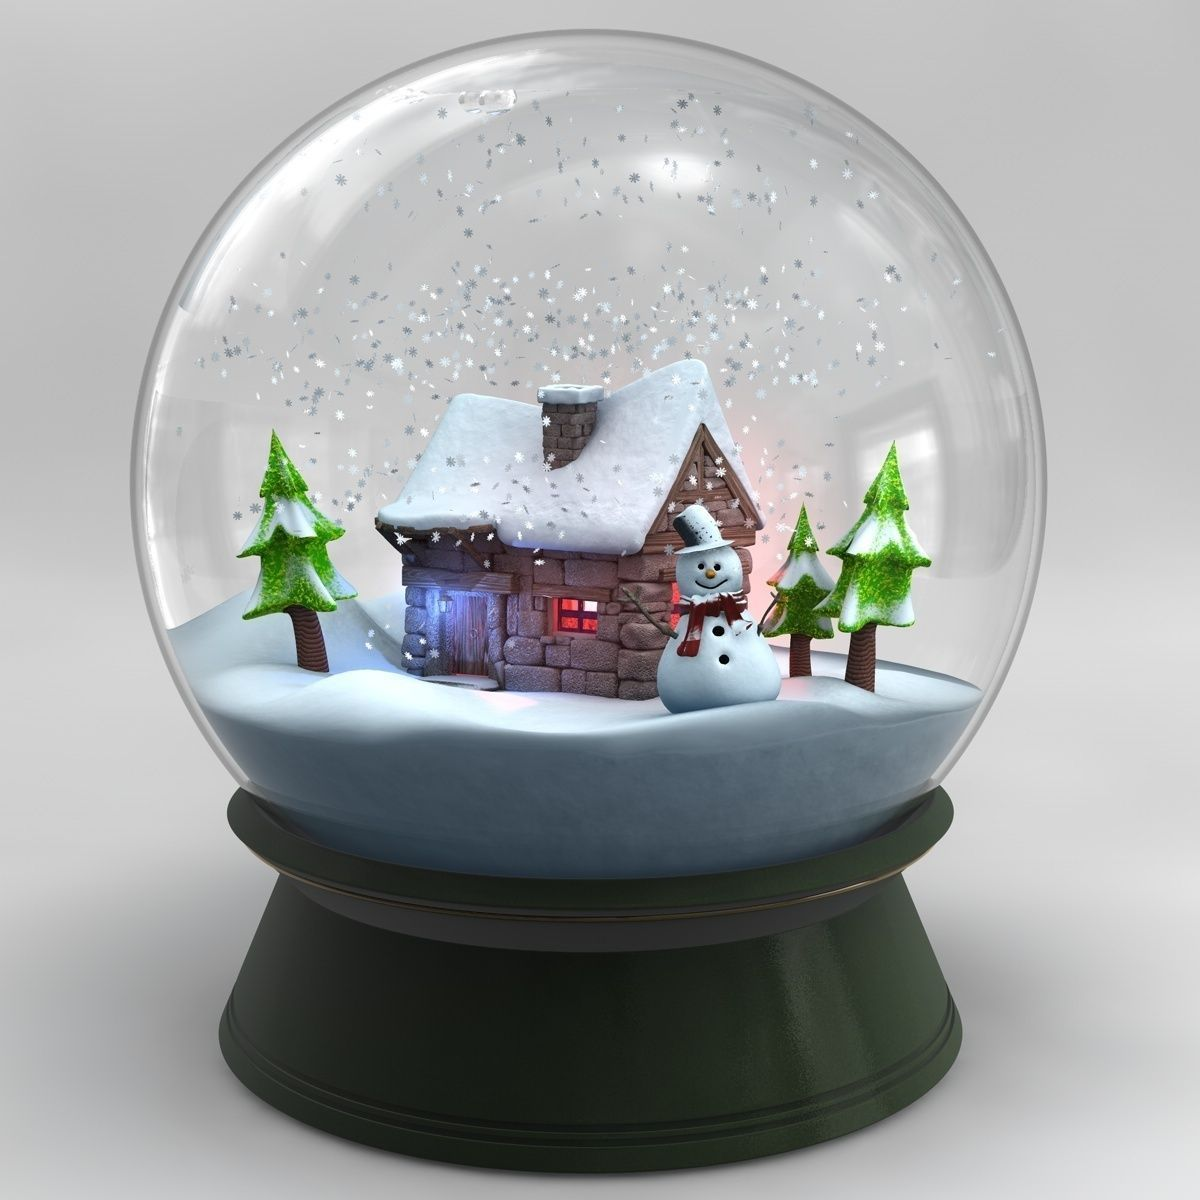 Photoshop Pro: 10 Steps To Create A Personalized Snow Globe ...